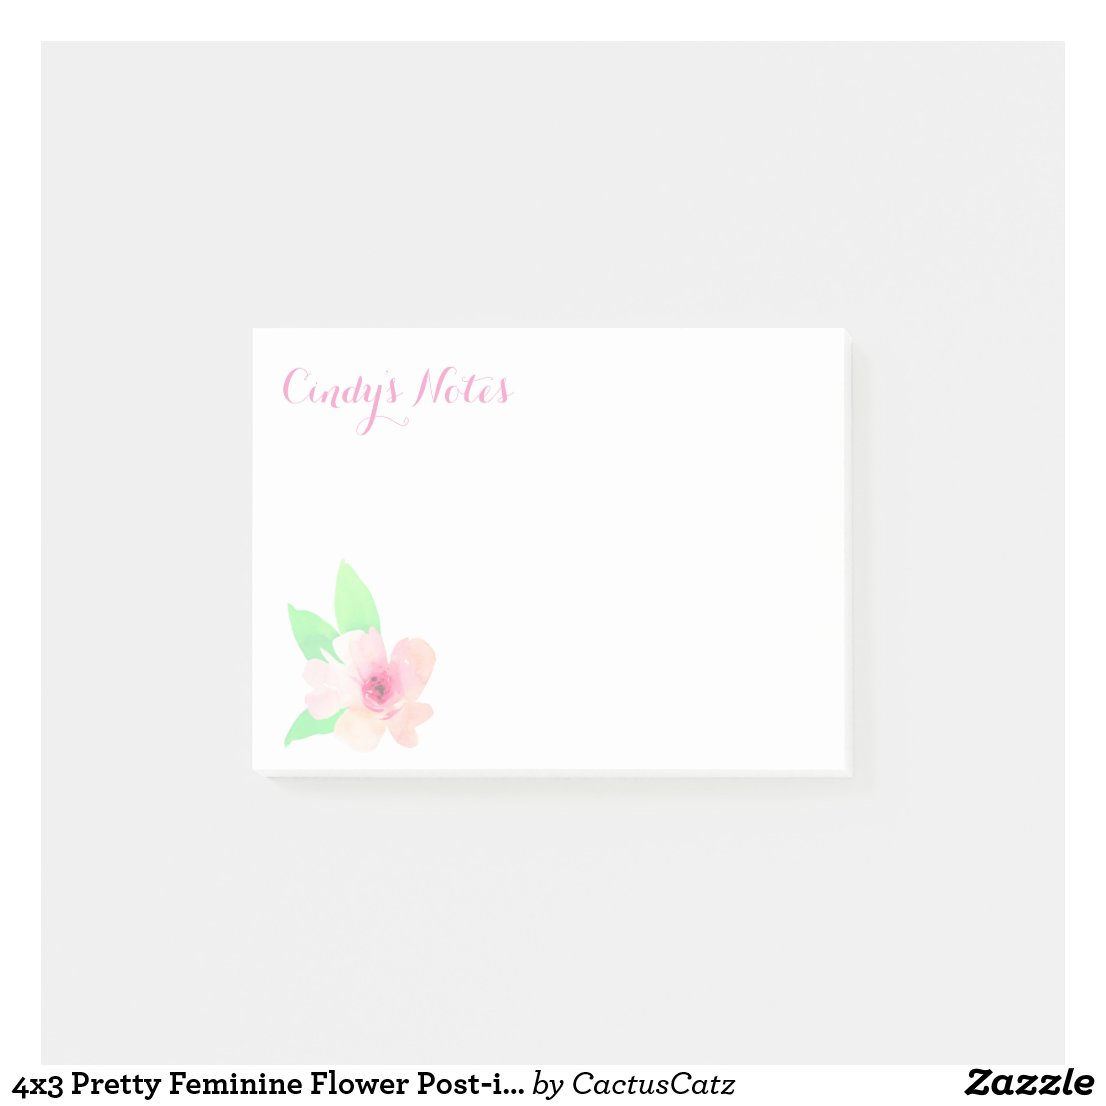 4x3 Flower Post-it Notes